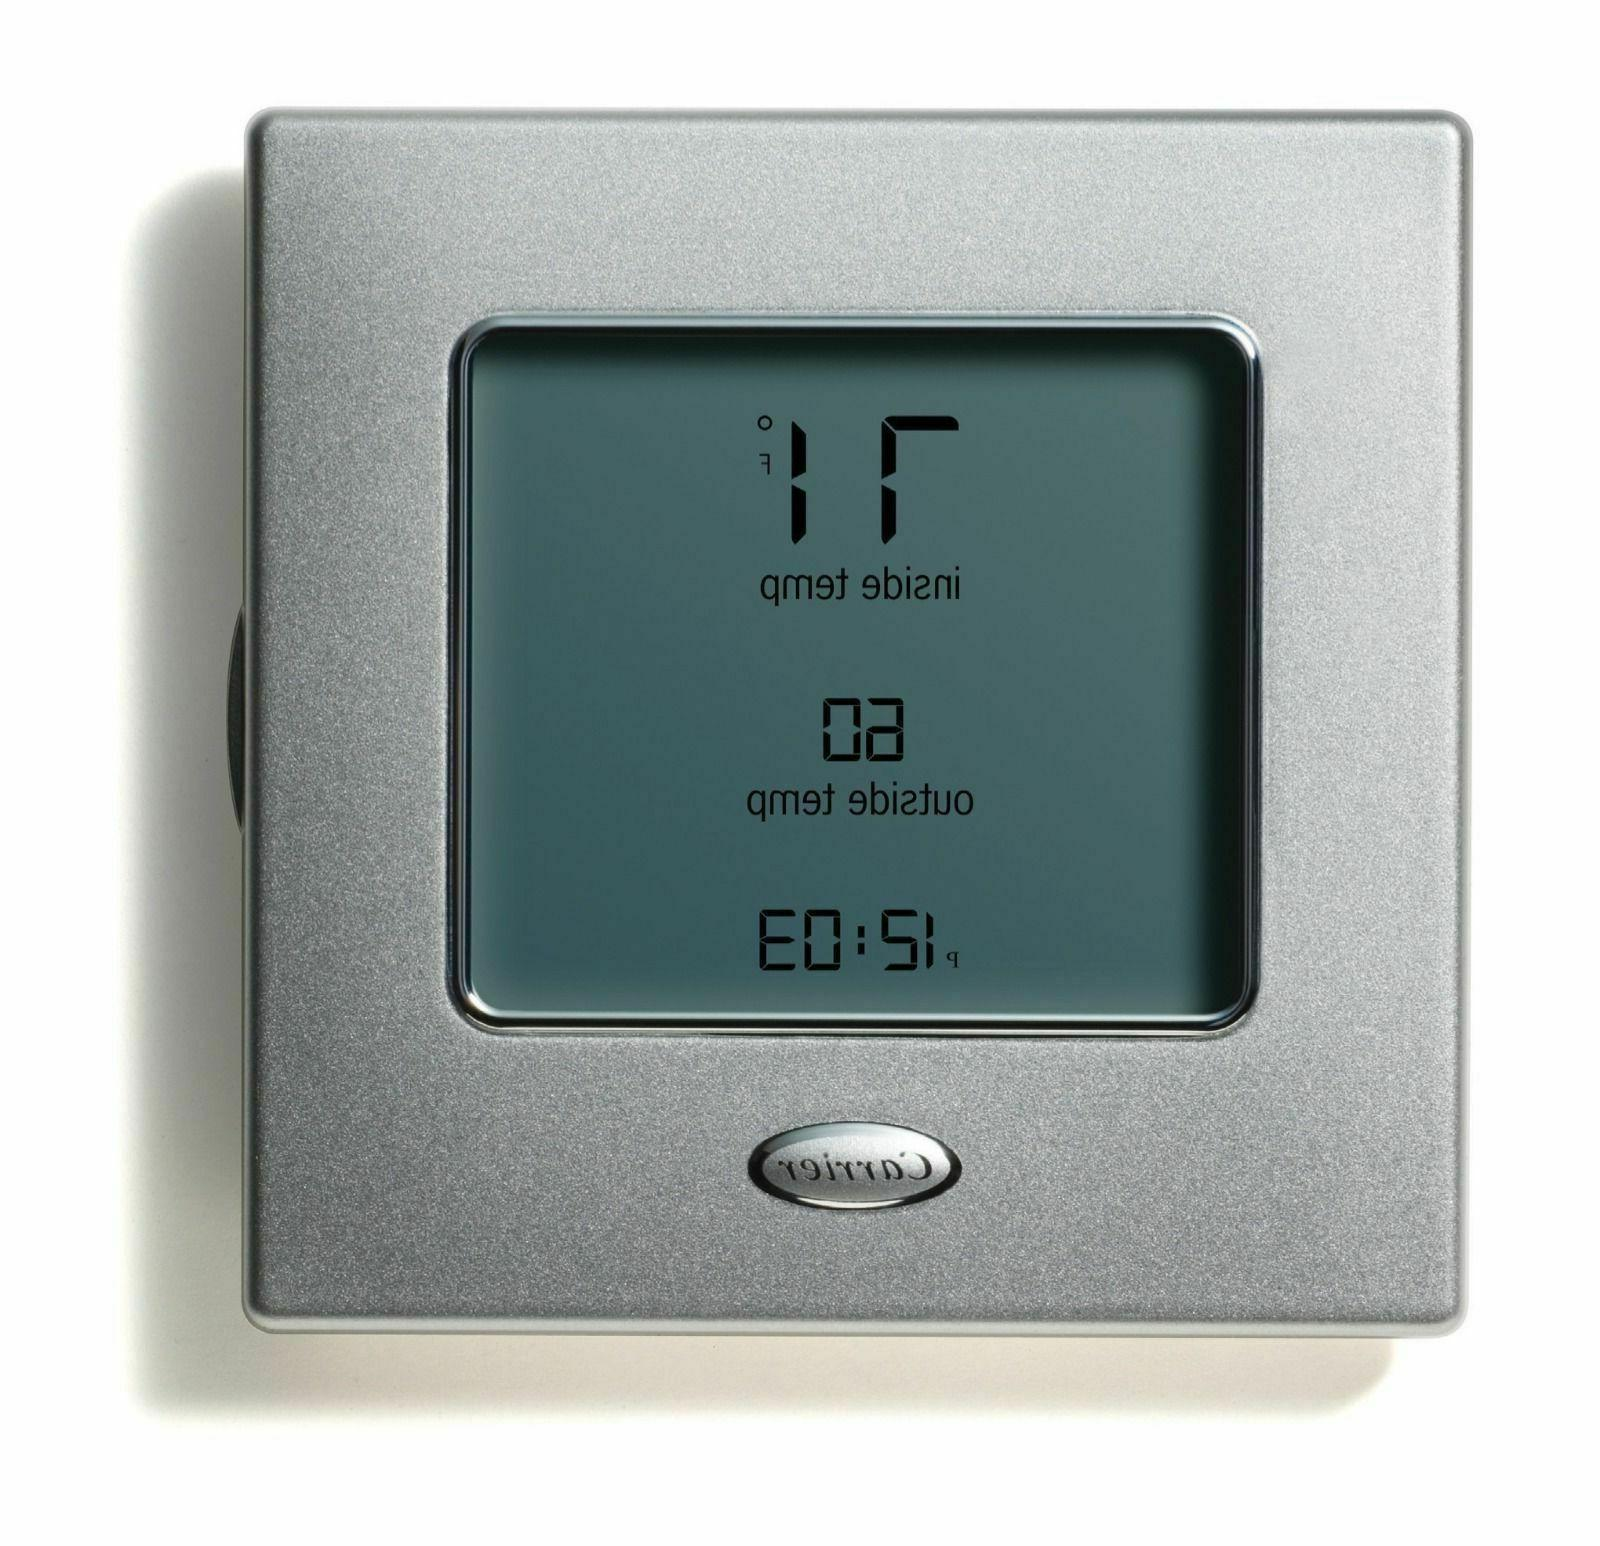 edge pro 33cs2pp2s 03 digital thermostat brand